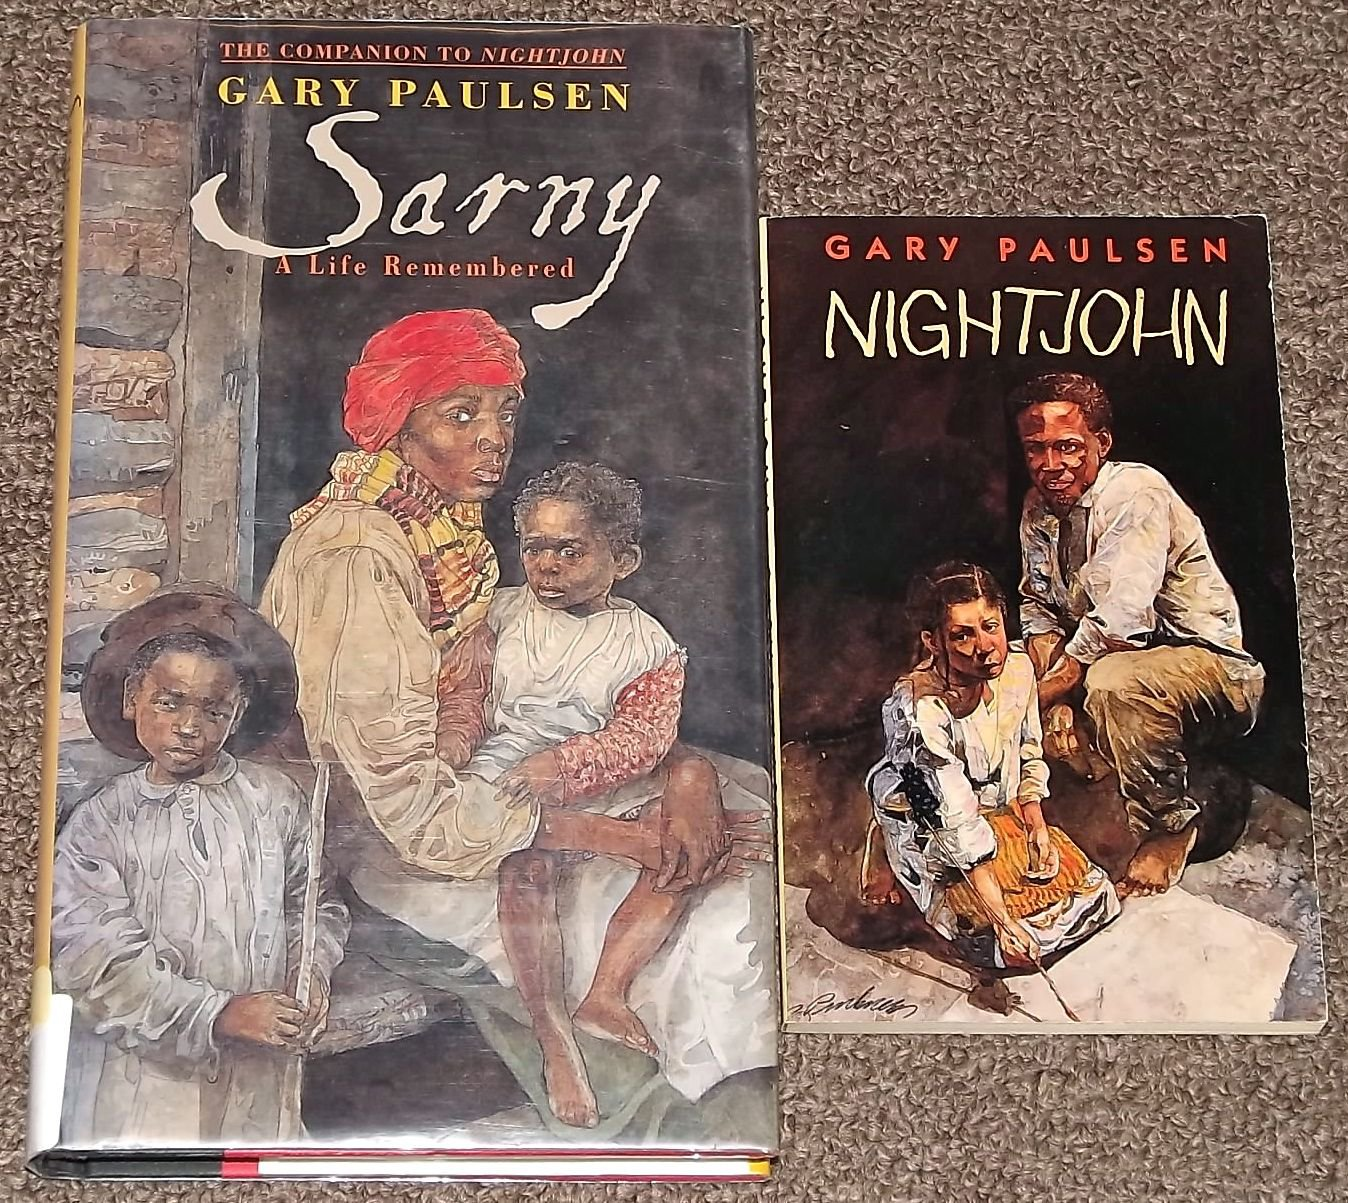 sarny a life remembered Sarny: a life remembered by gary paulsen starting at $099 sarny: a life remembered has 4 available editions to buy at alibris.